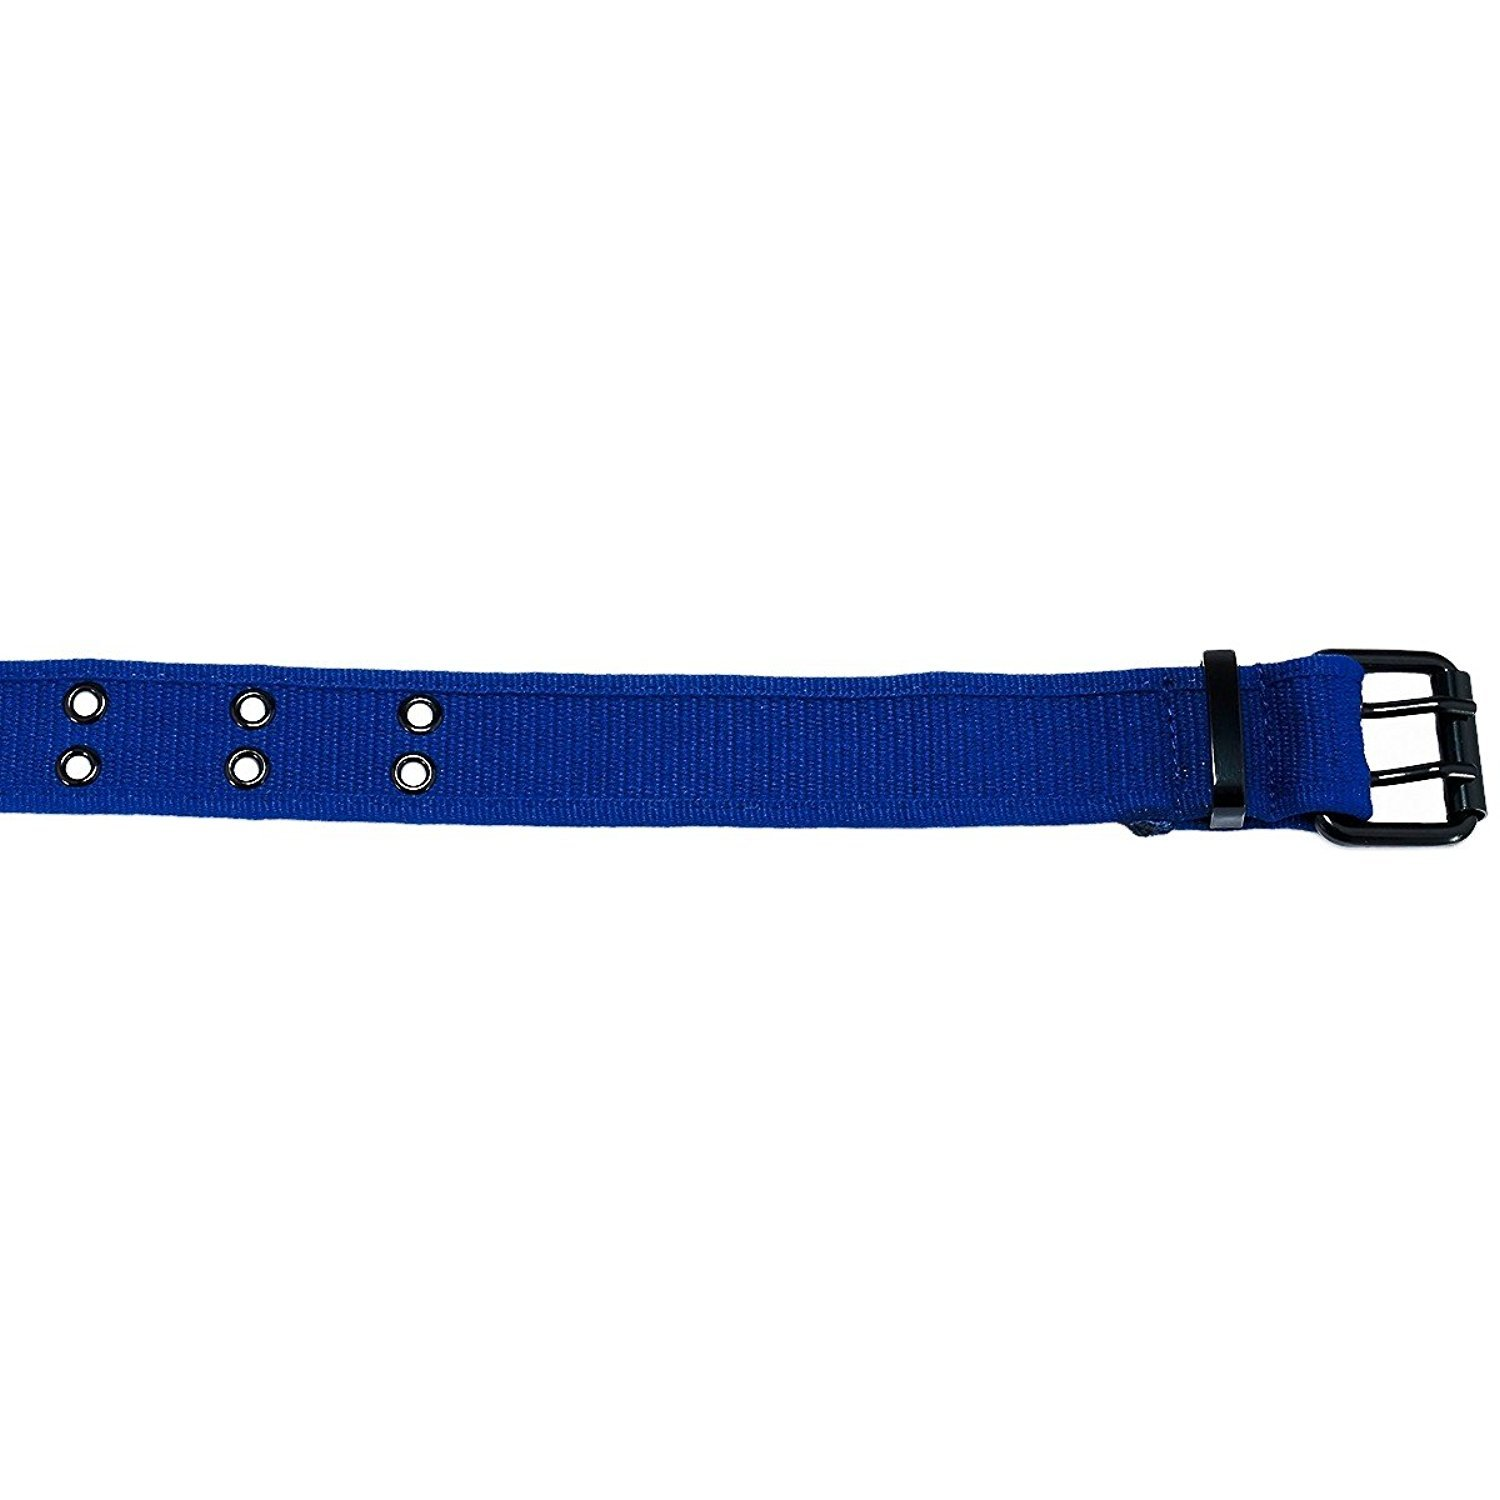 XL - 39//42, Blue Double Hole Grommets Canvas Web Belt with Forged Black Buckle for Men /& Women